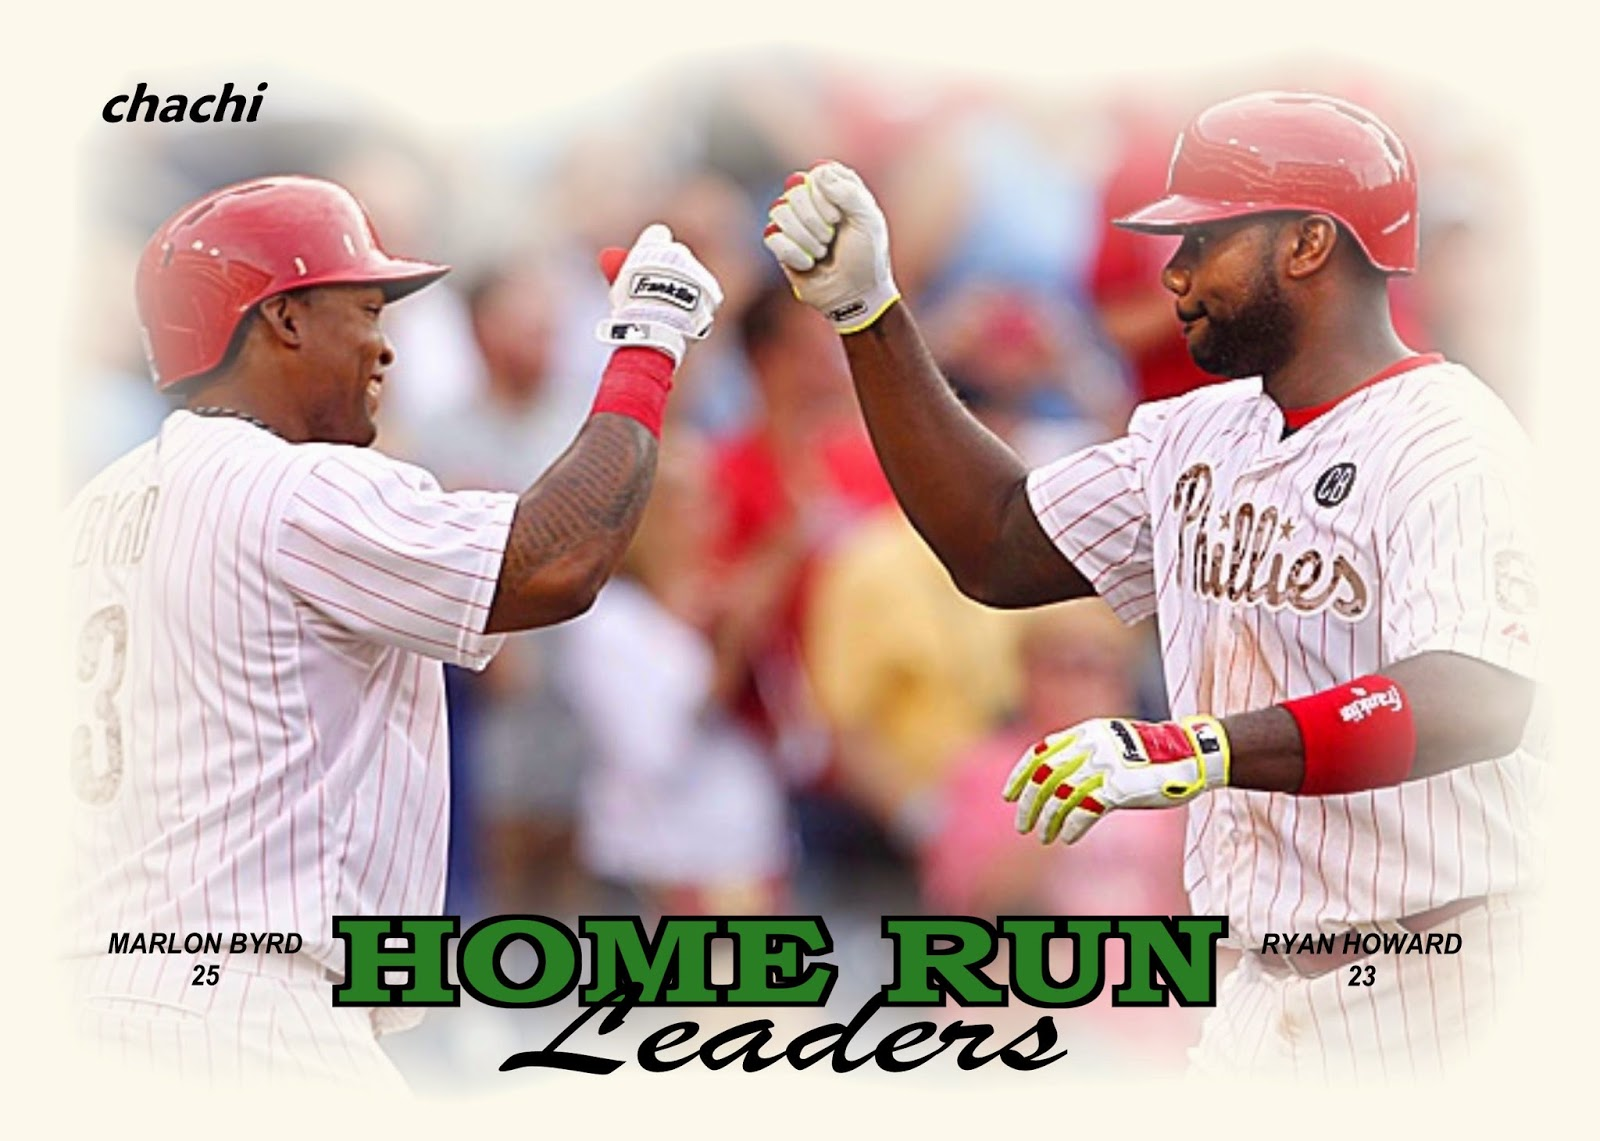 the phillies room 2014 chachi 66 home run leaders   byrd